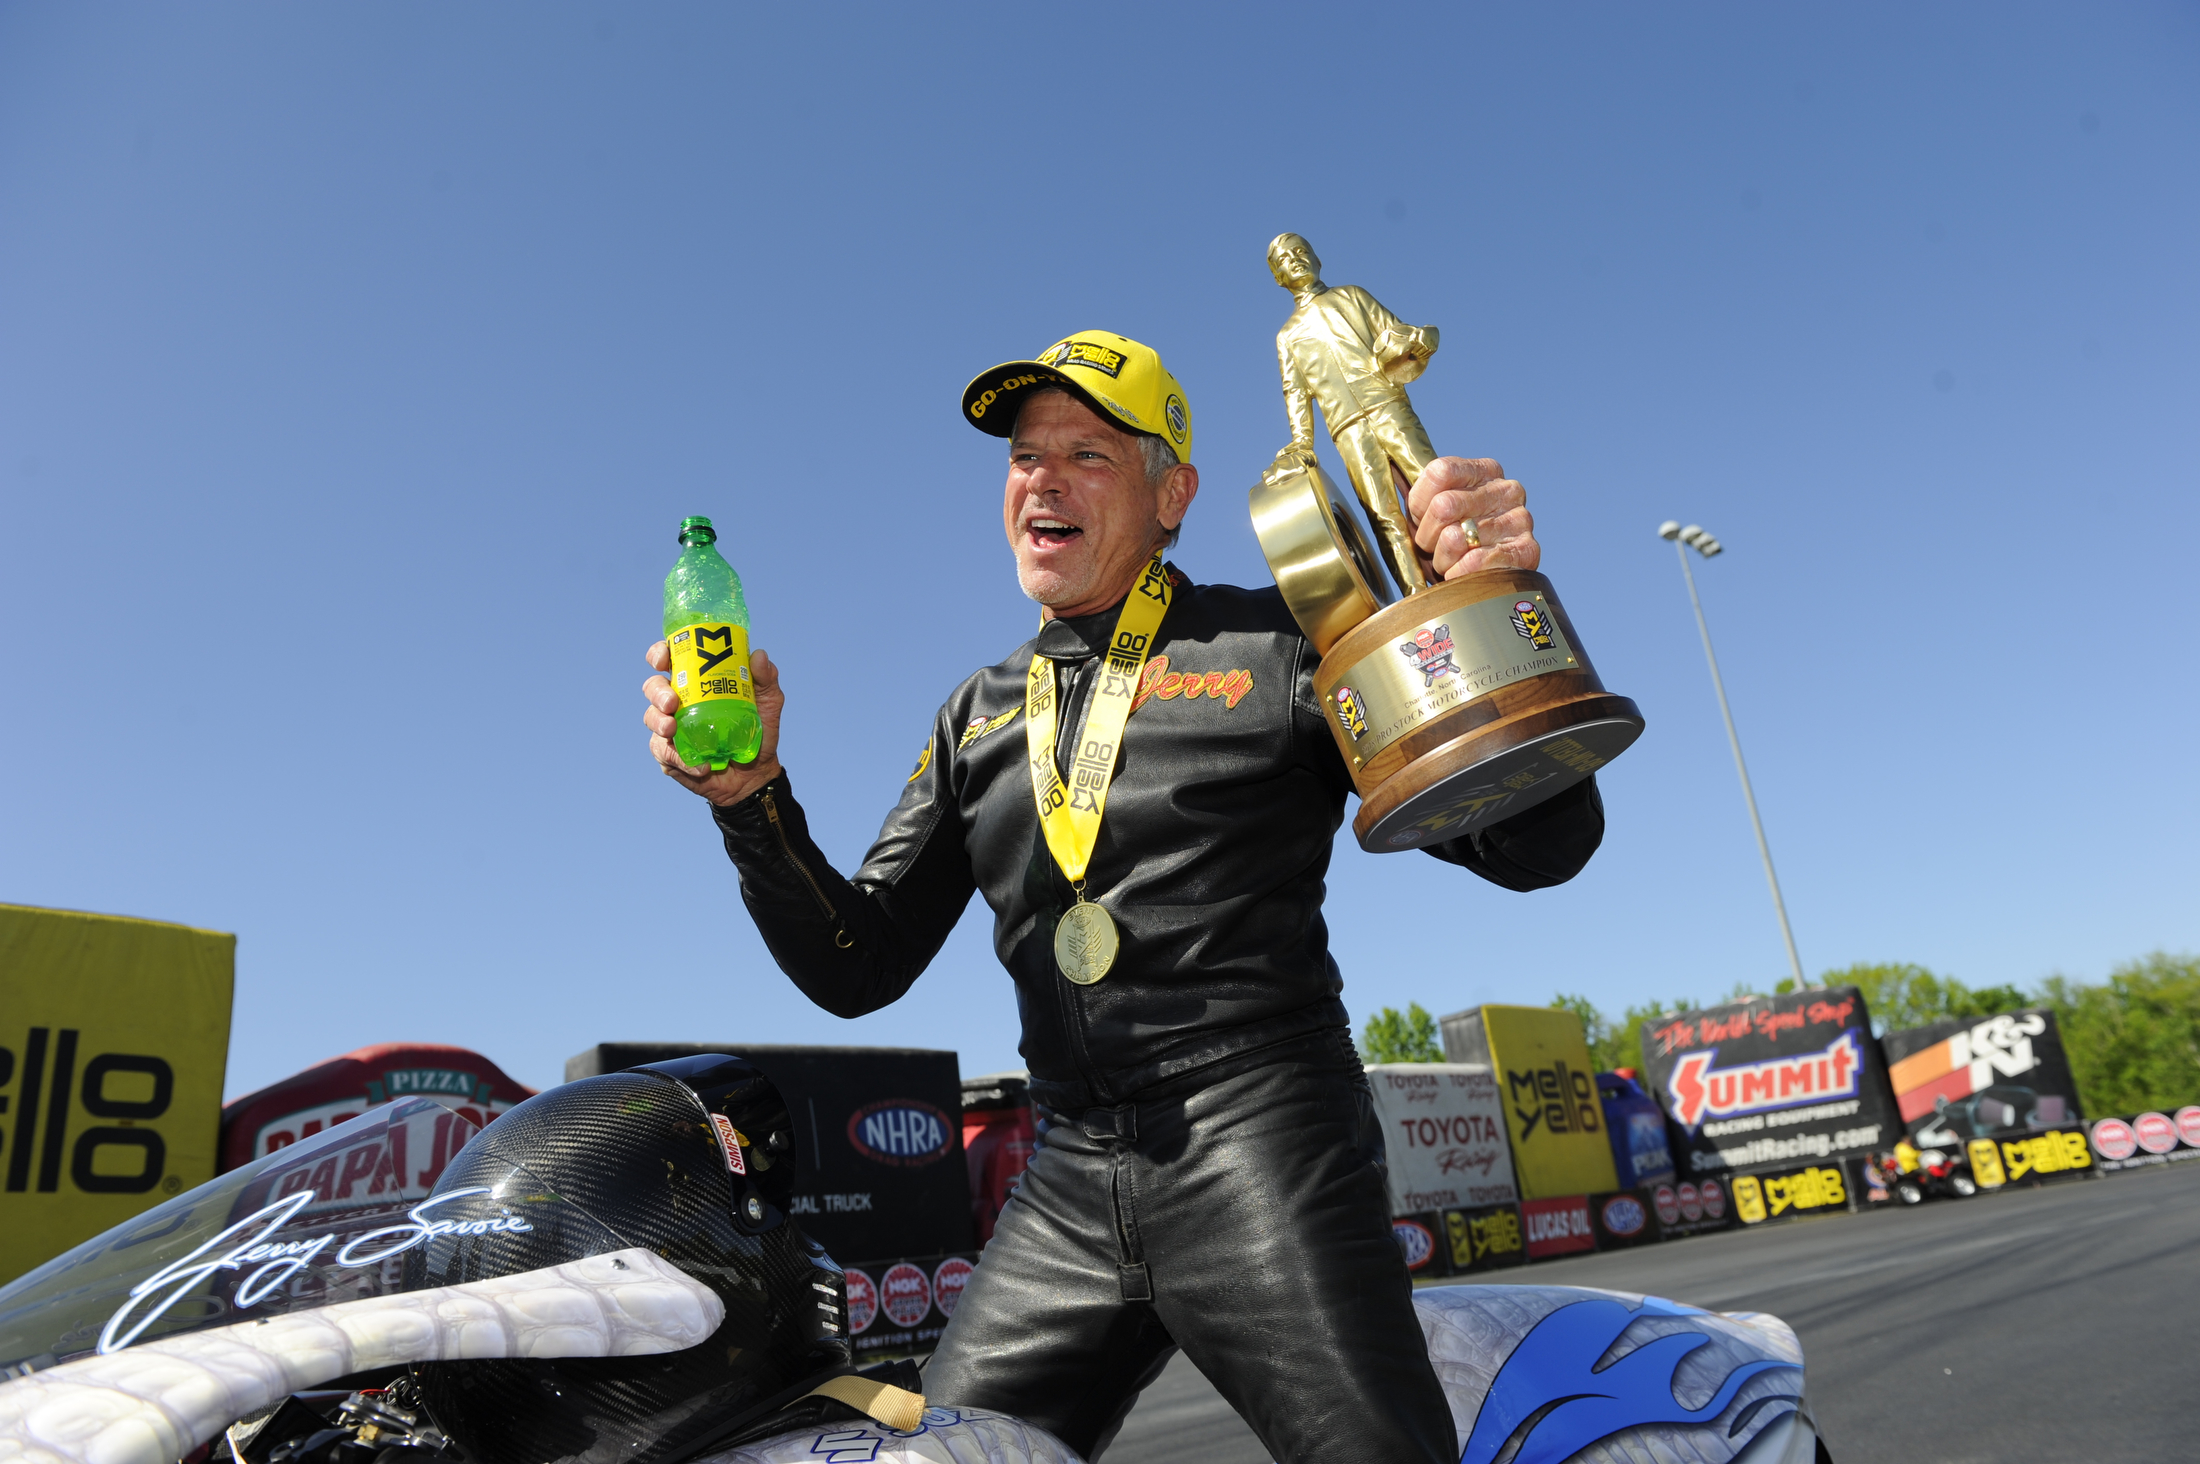 Pro Stock Motorcycle rider Jerry Savoie after winning the NGK Spark Plugs NHRA Four-Wide Nationals